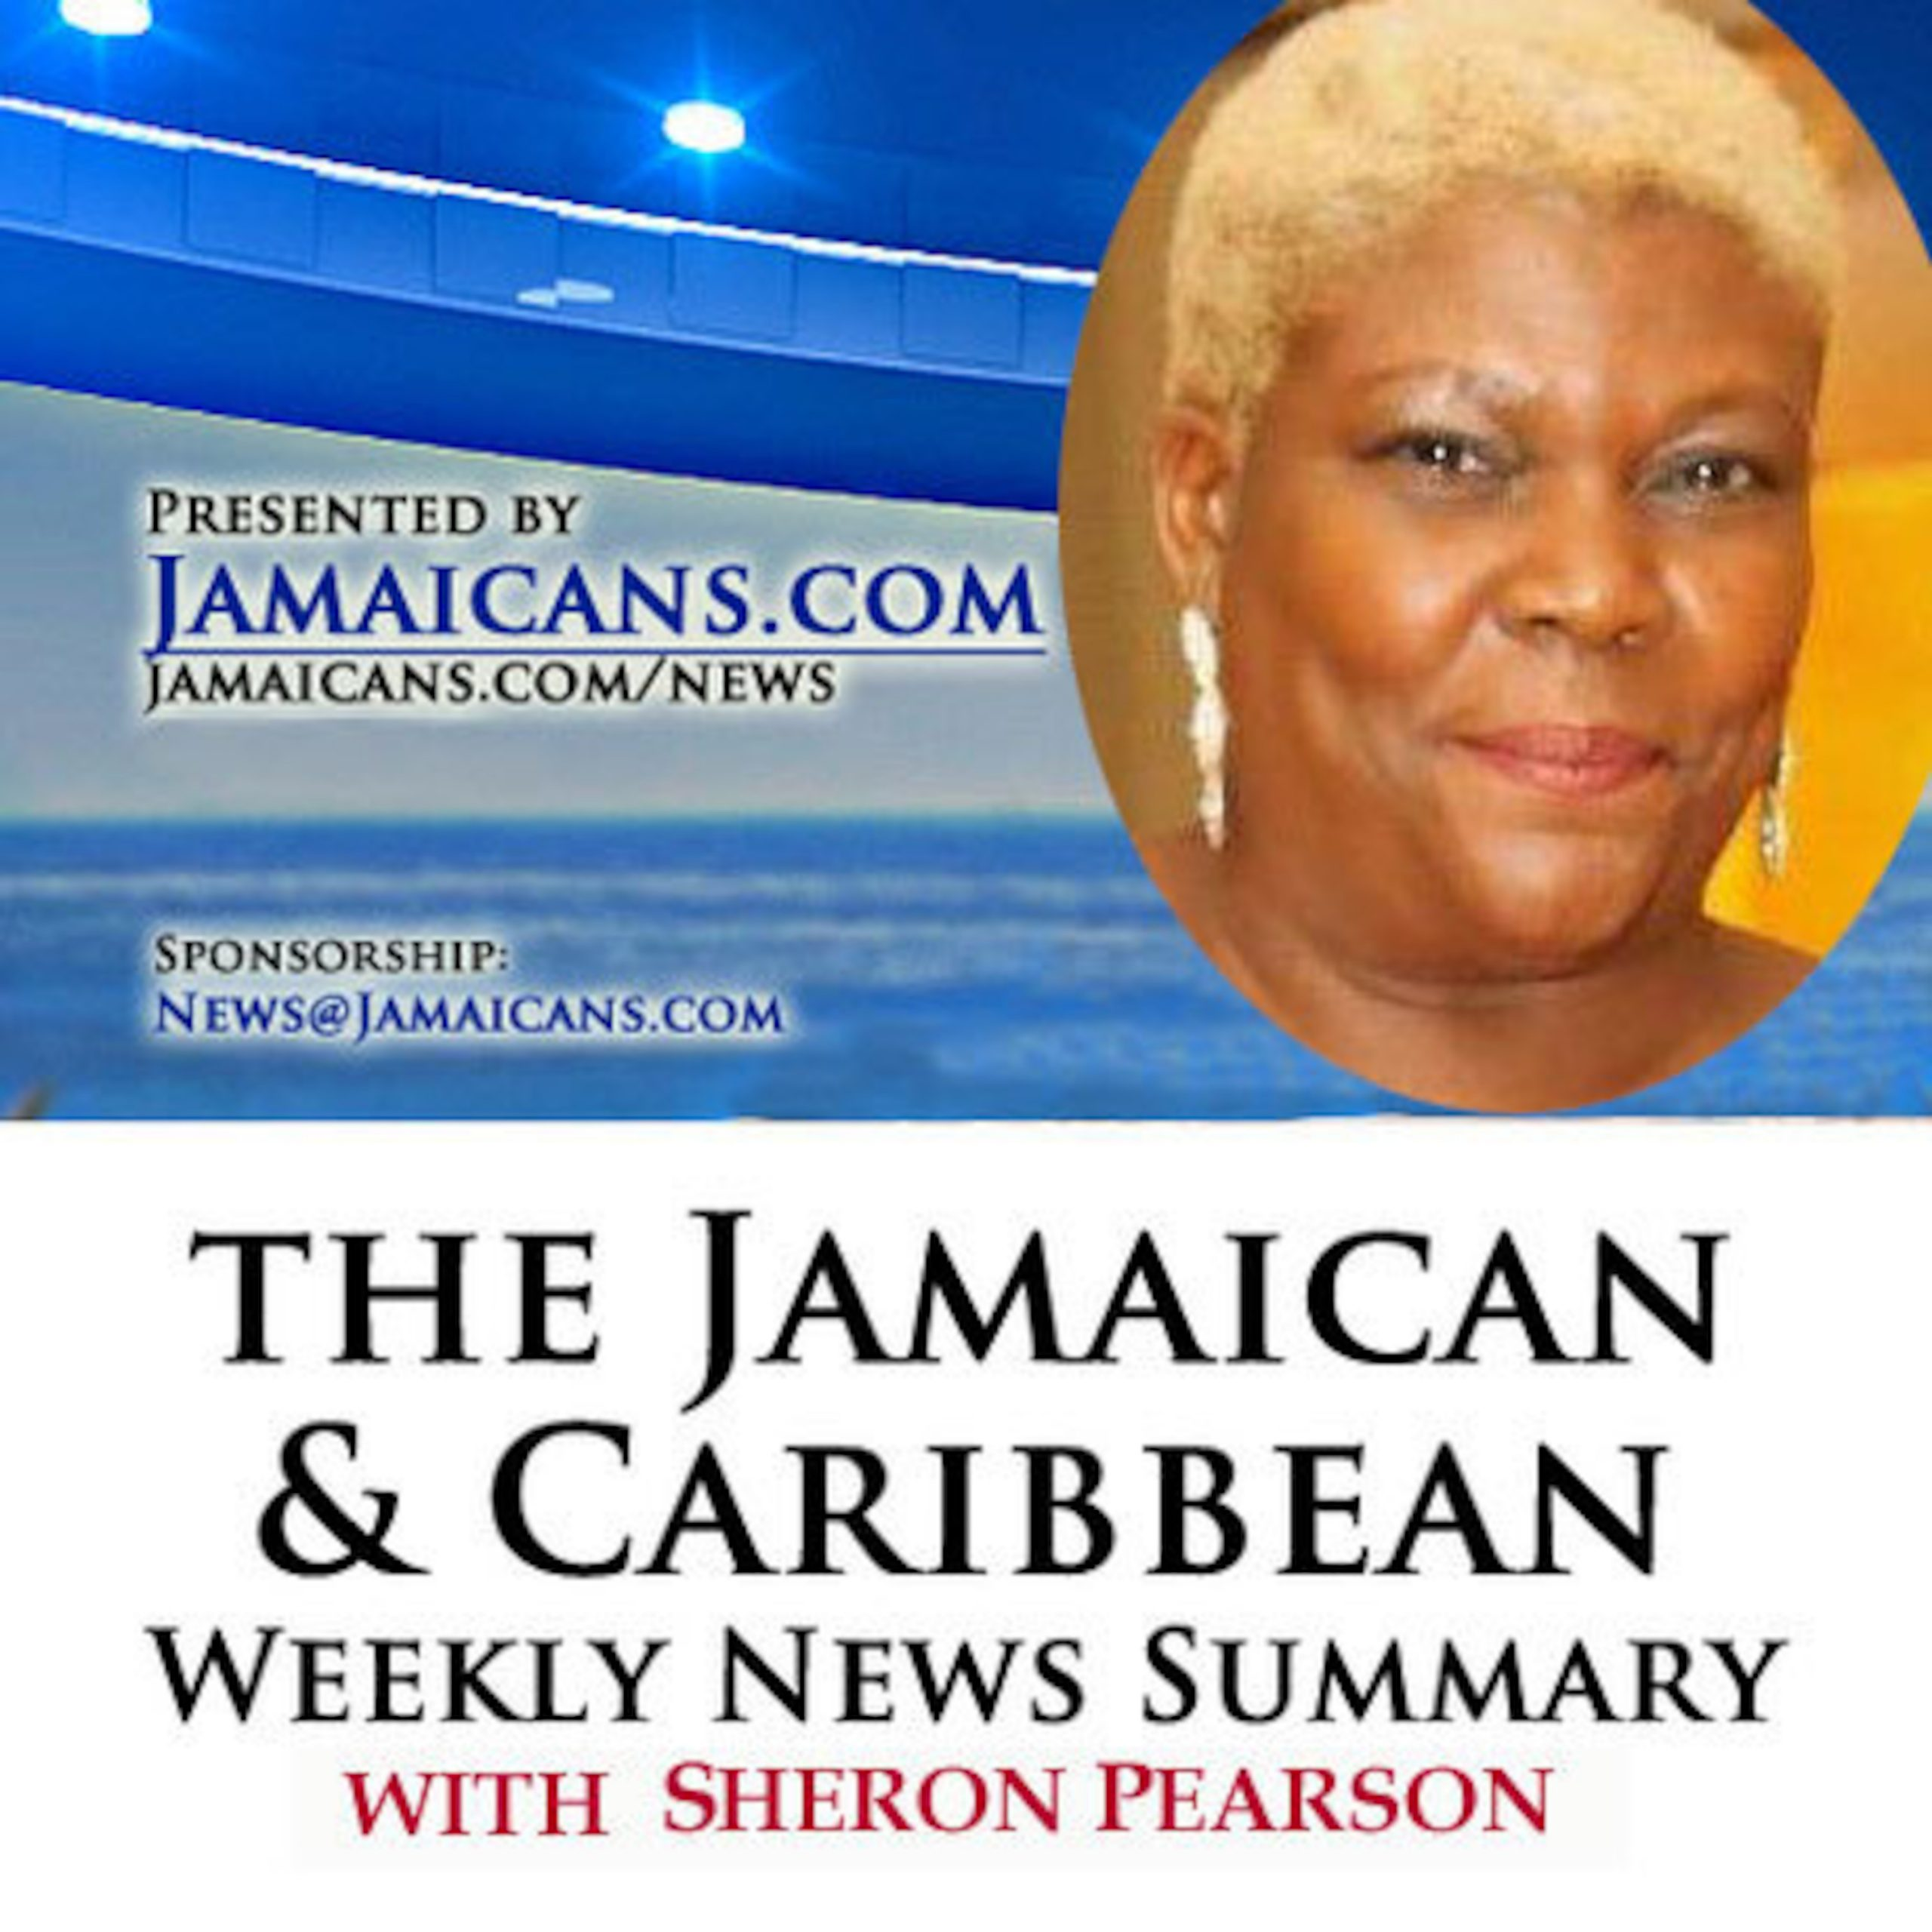 Listen to the Podcast of The Jamaica & Caribbean Weekly News Summary for the week ending December 6, 2019